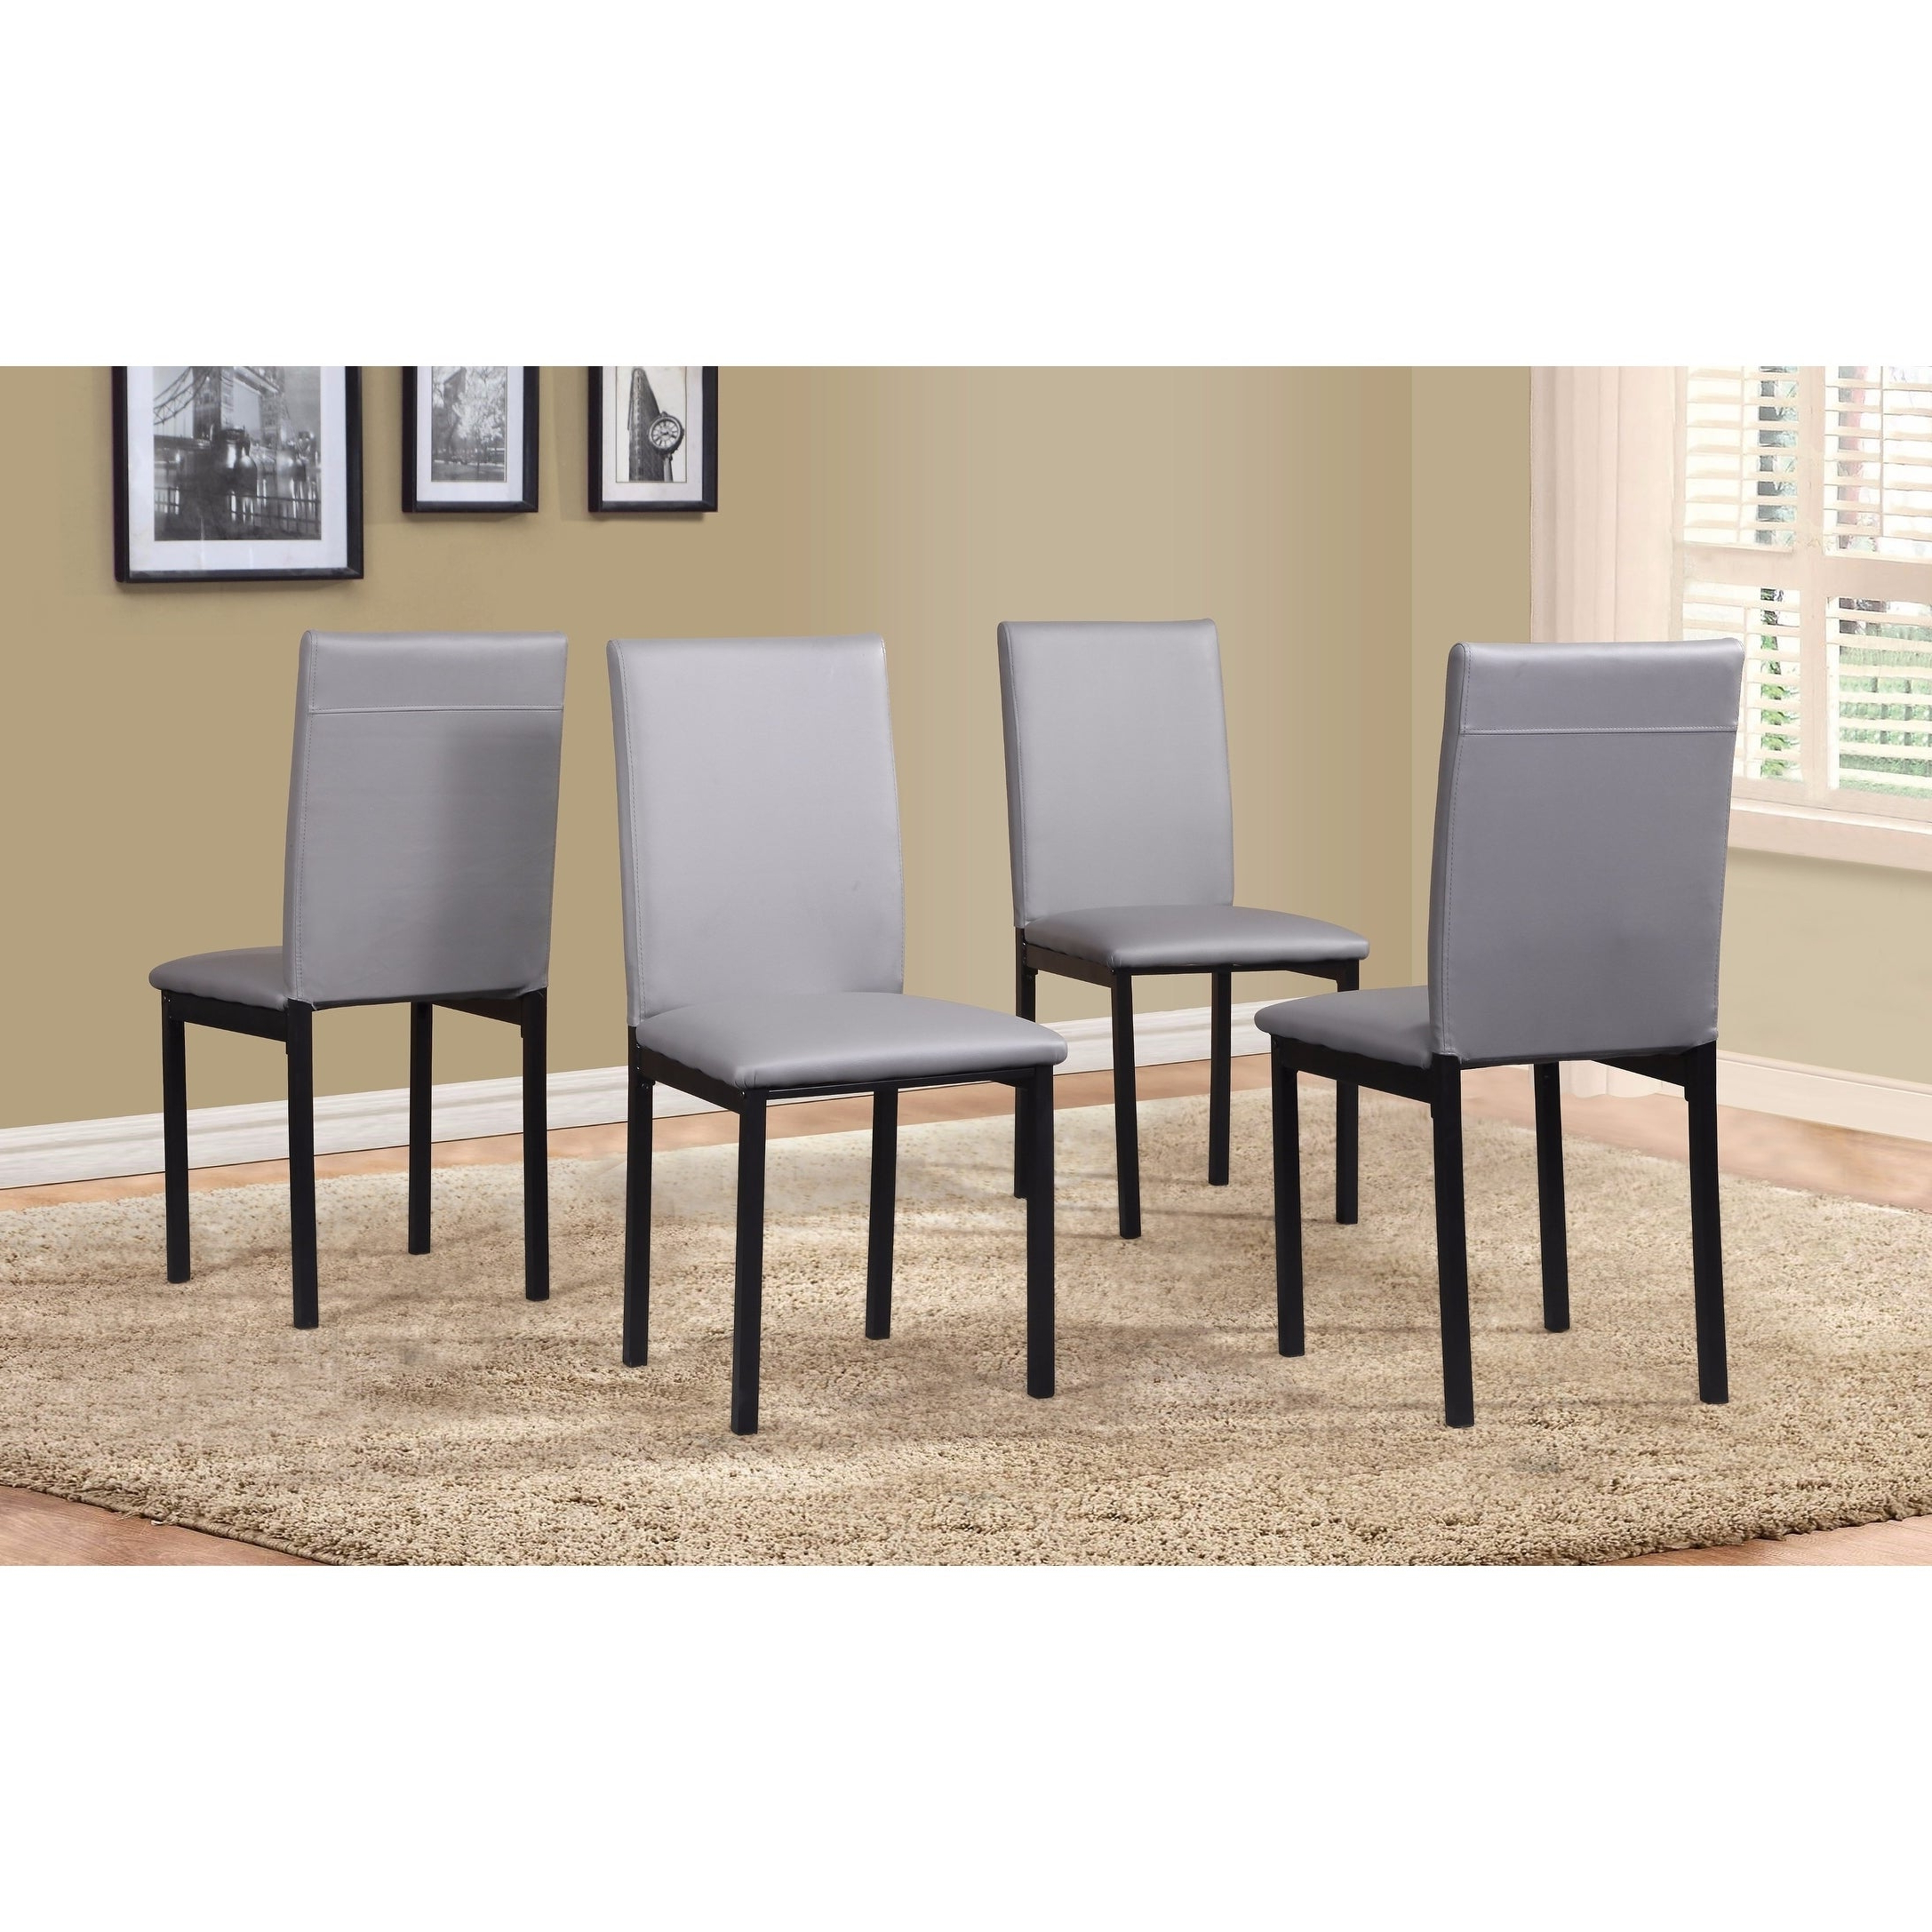 Popular Noyes Faux Leather Seat Metal Frame Black Dining Chairs, Set Of 4 Pertaining To Noyes 5 Piece Dining Sets (View 15 of 20)